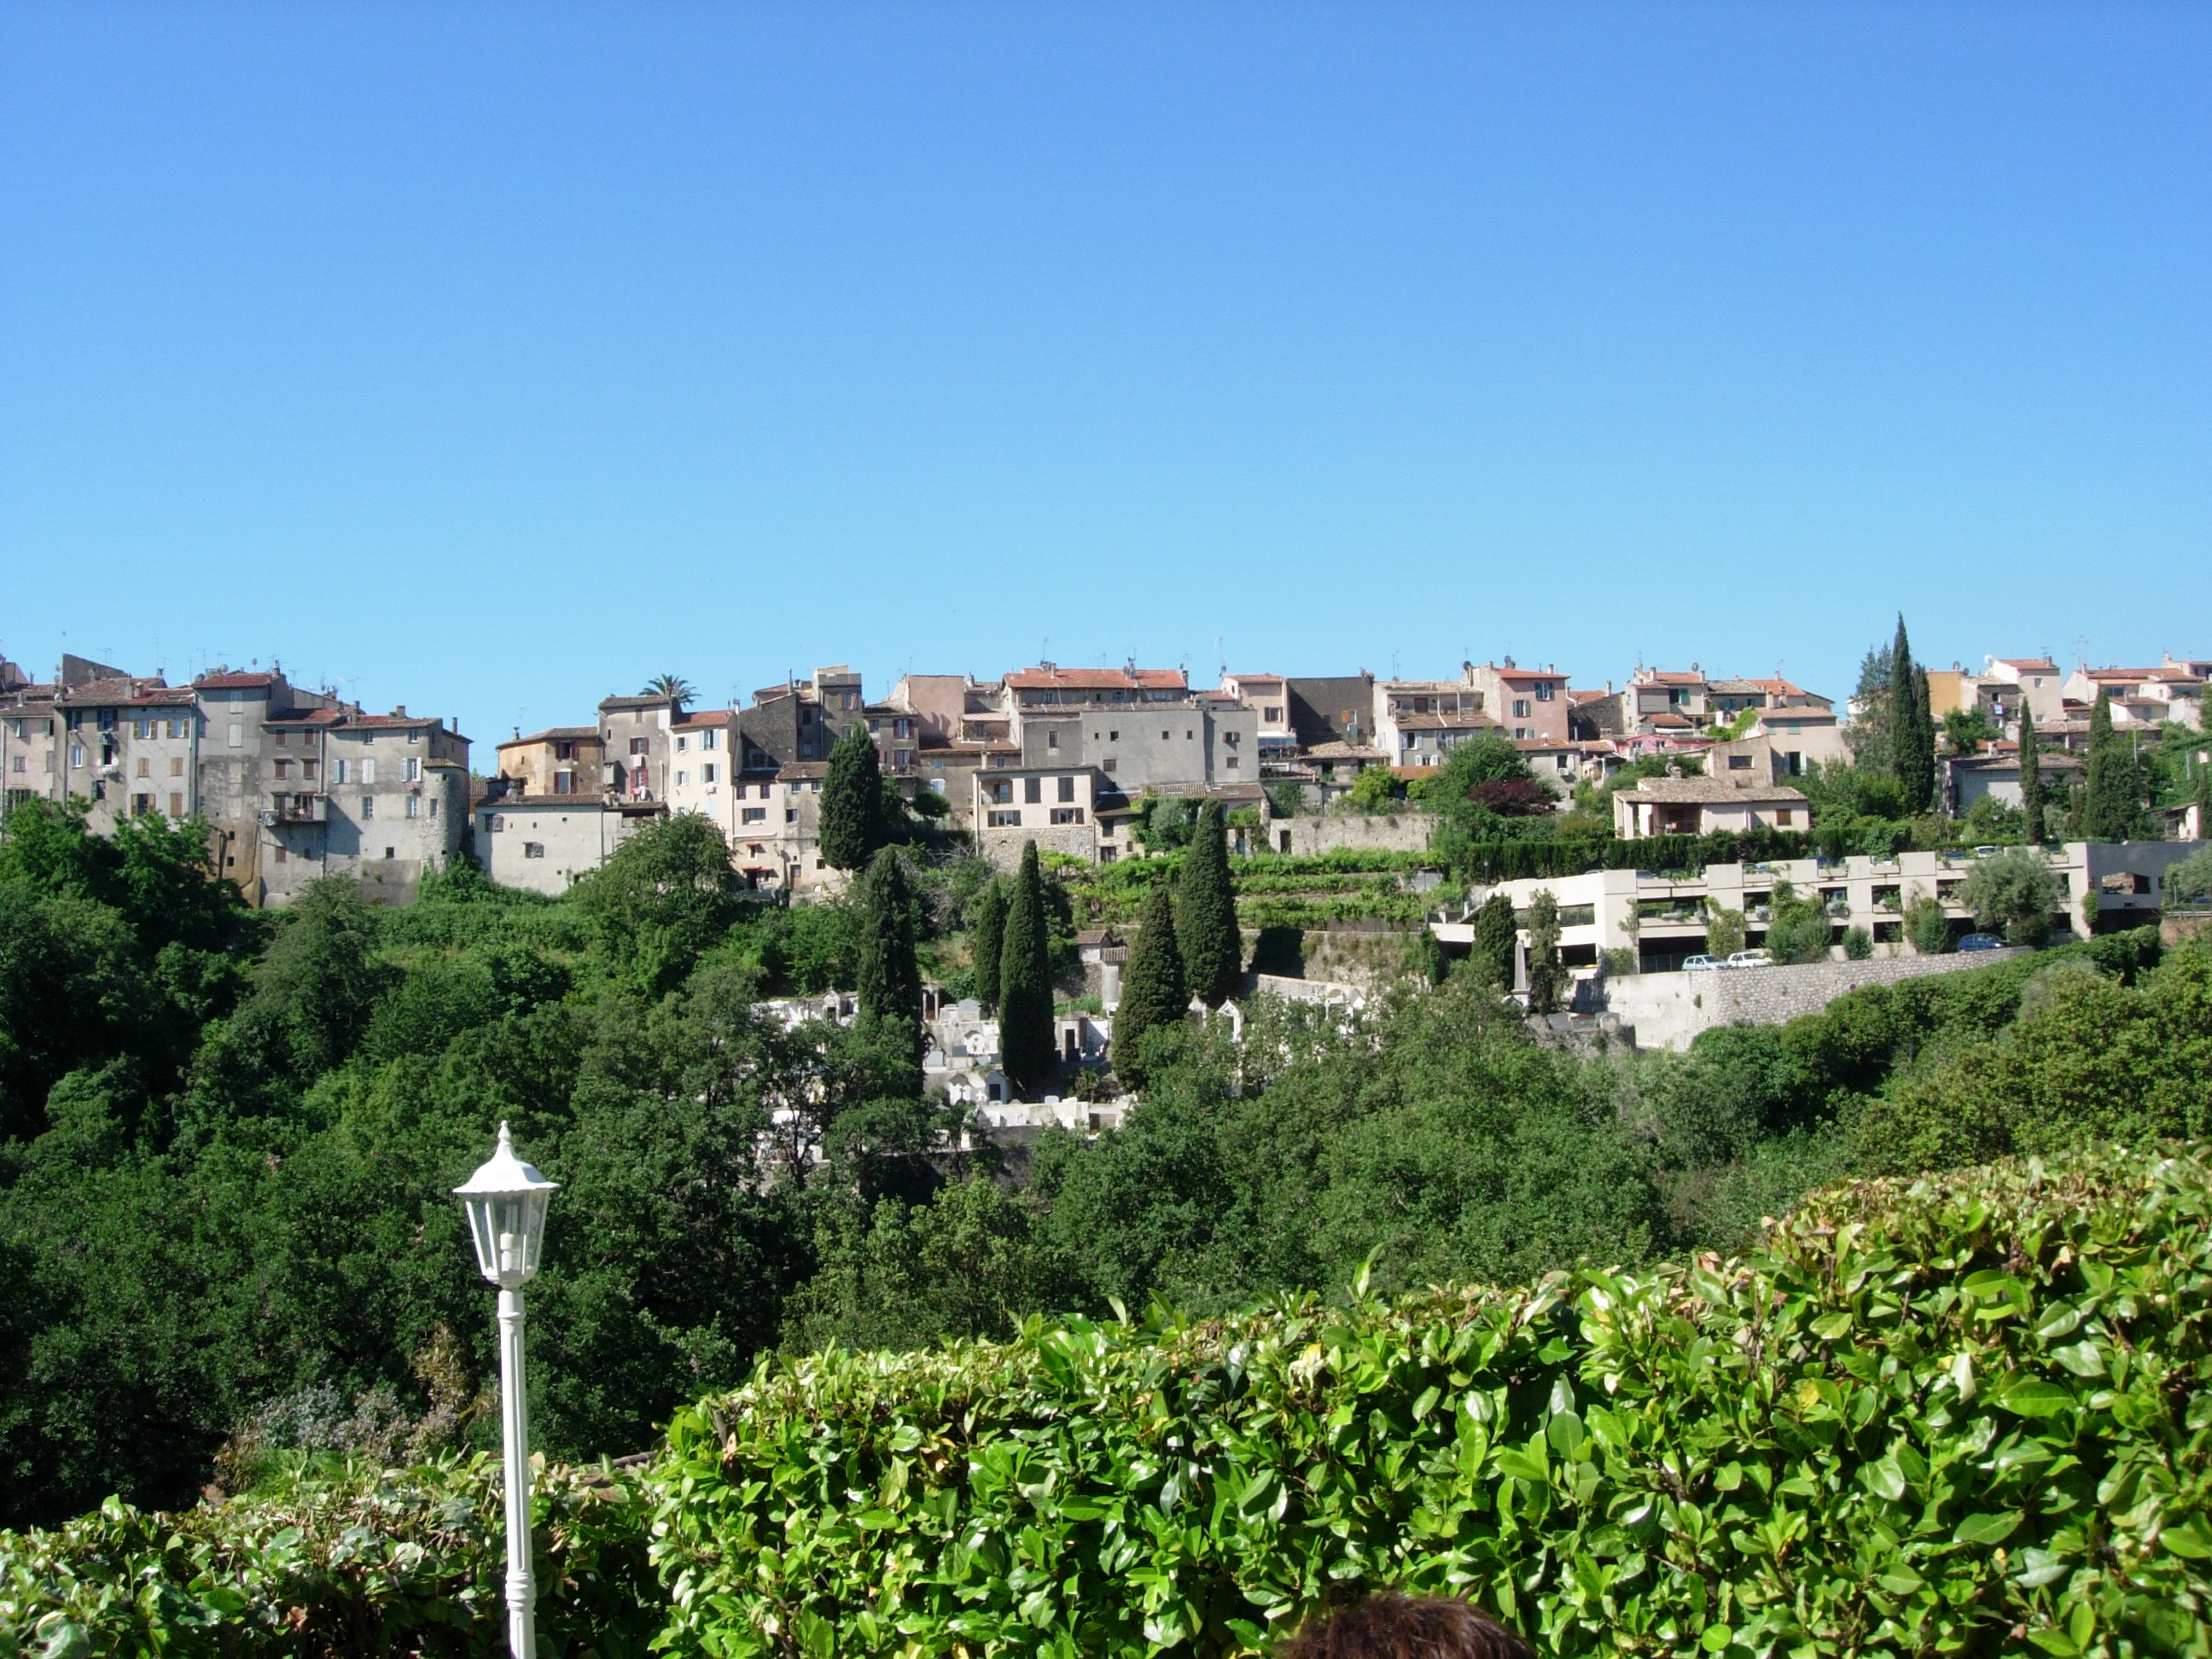 Biot France  city photos gallery : Images of the South of France from cotedazurental.com